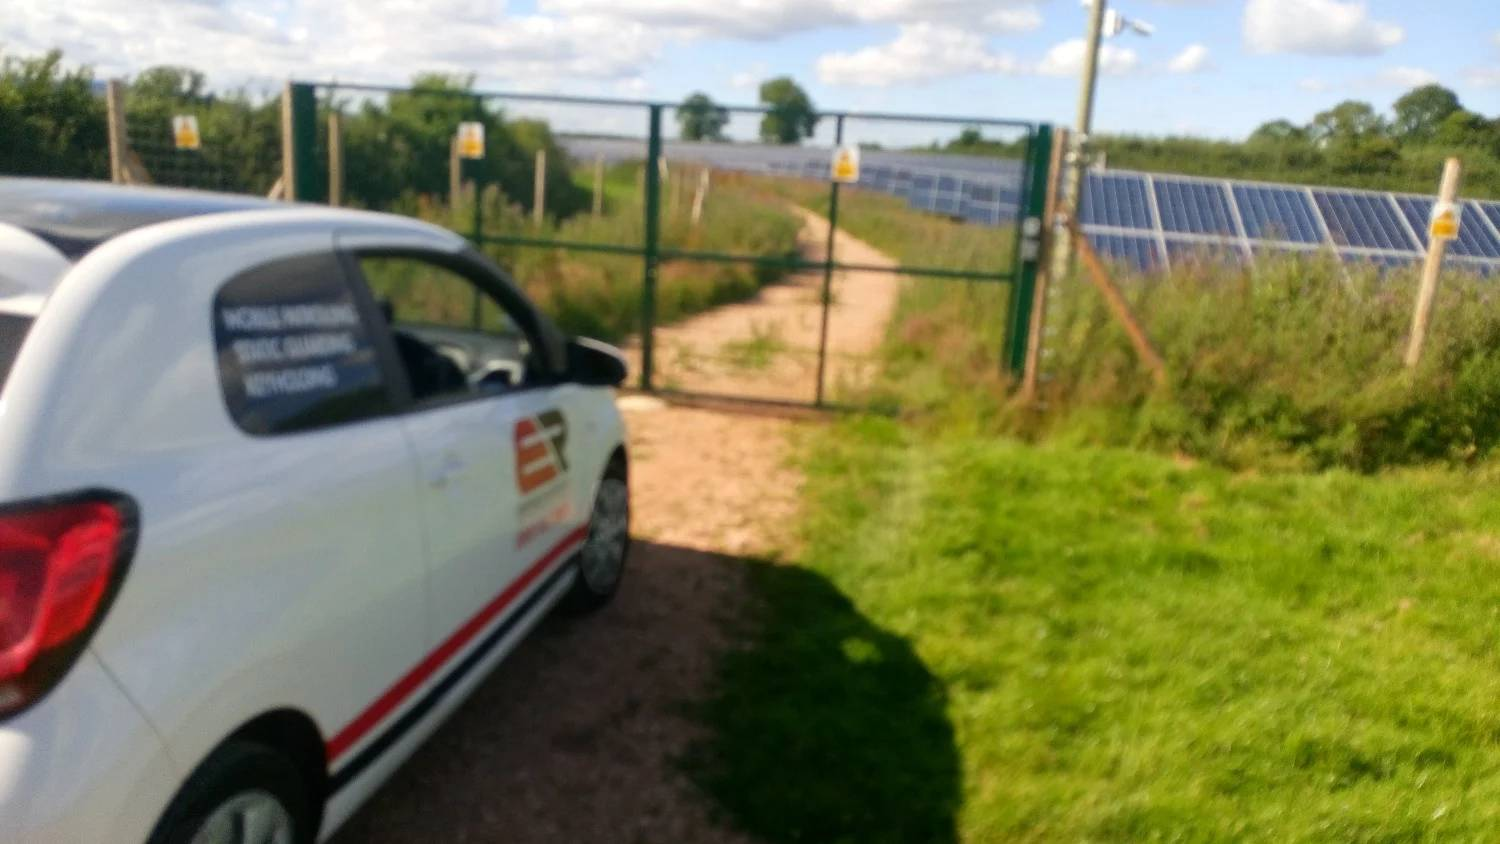 er-response-security-services-devon-torbay-solar-farm-1